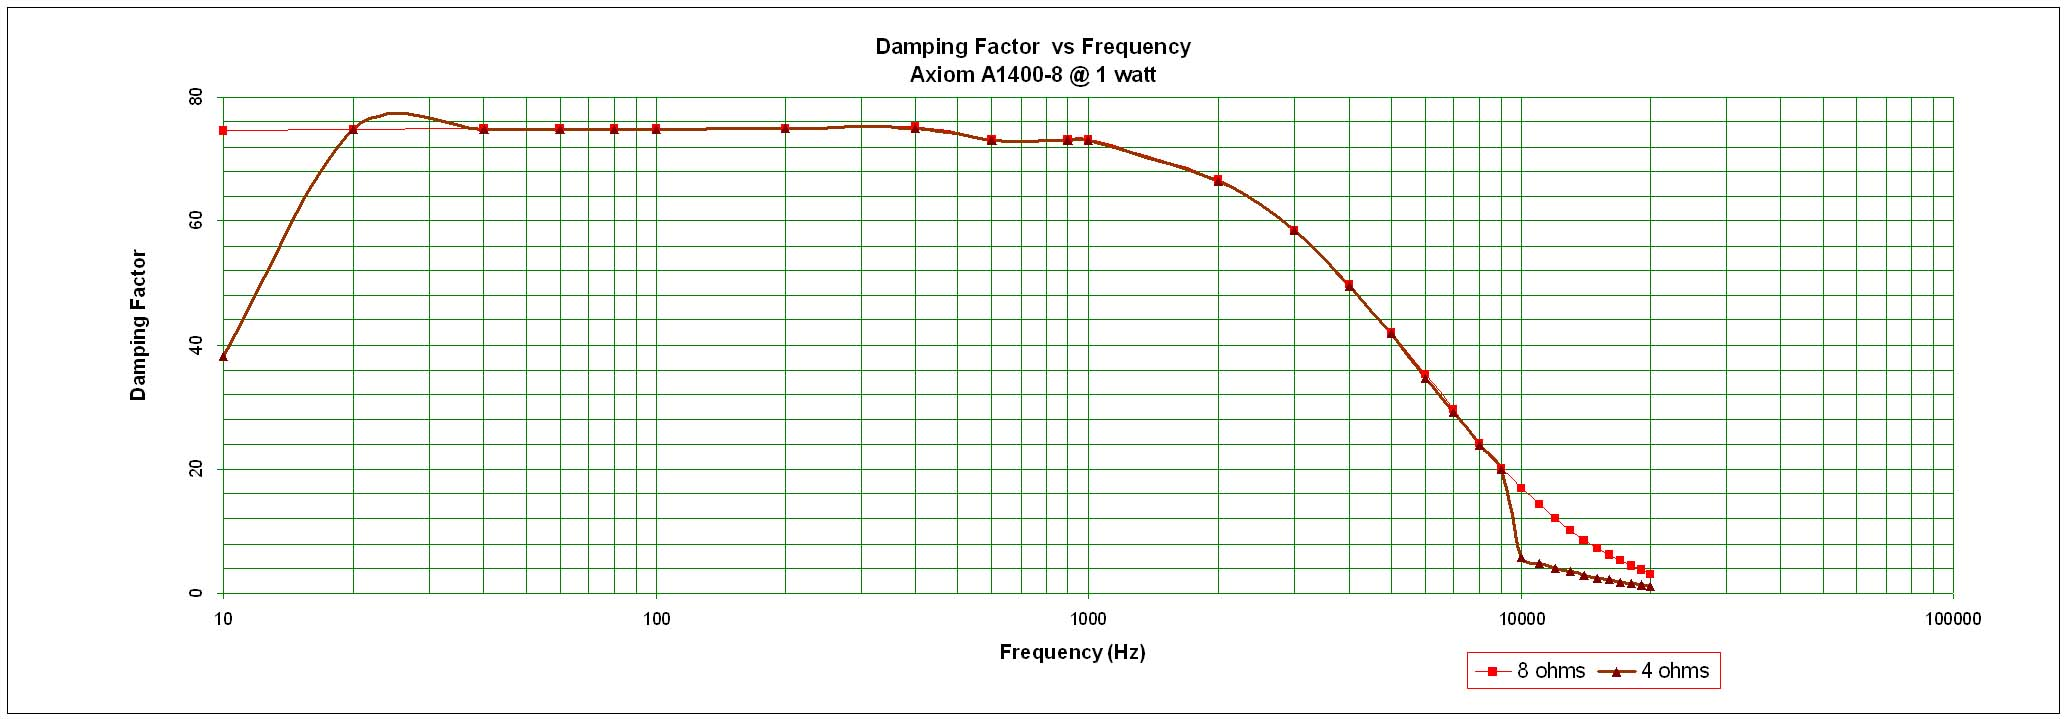 Audioholics Amplifier Measurement Standard The Signal Amplifiers Can Set Input And Output Ratio A1400 Damping